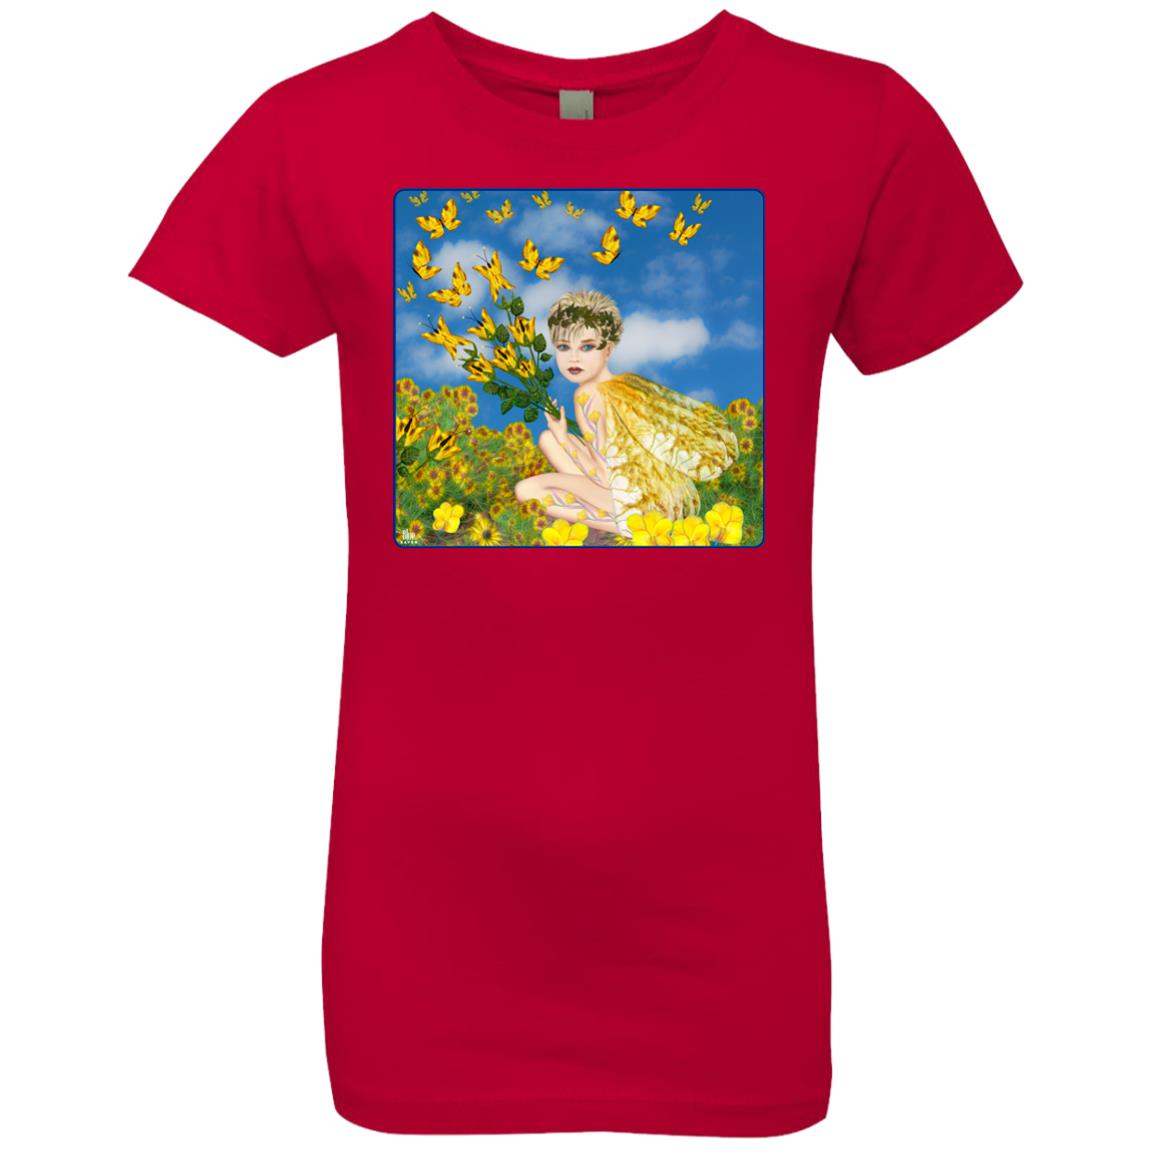 MAKING BUTTERFLIES - Girl's Premium Cotton T-Shirt